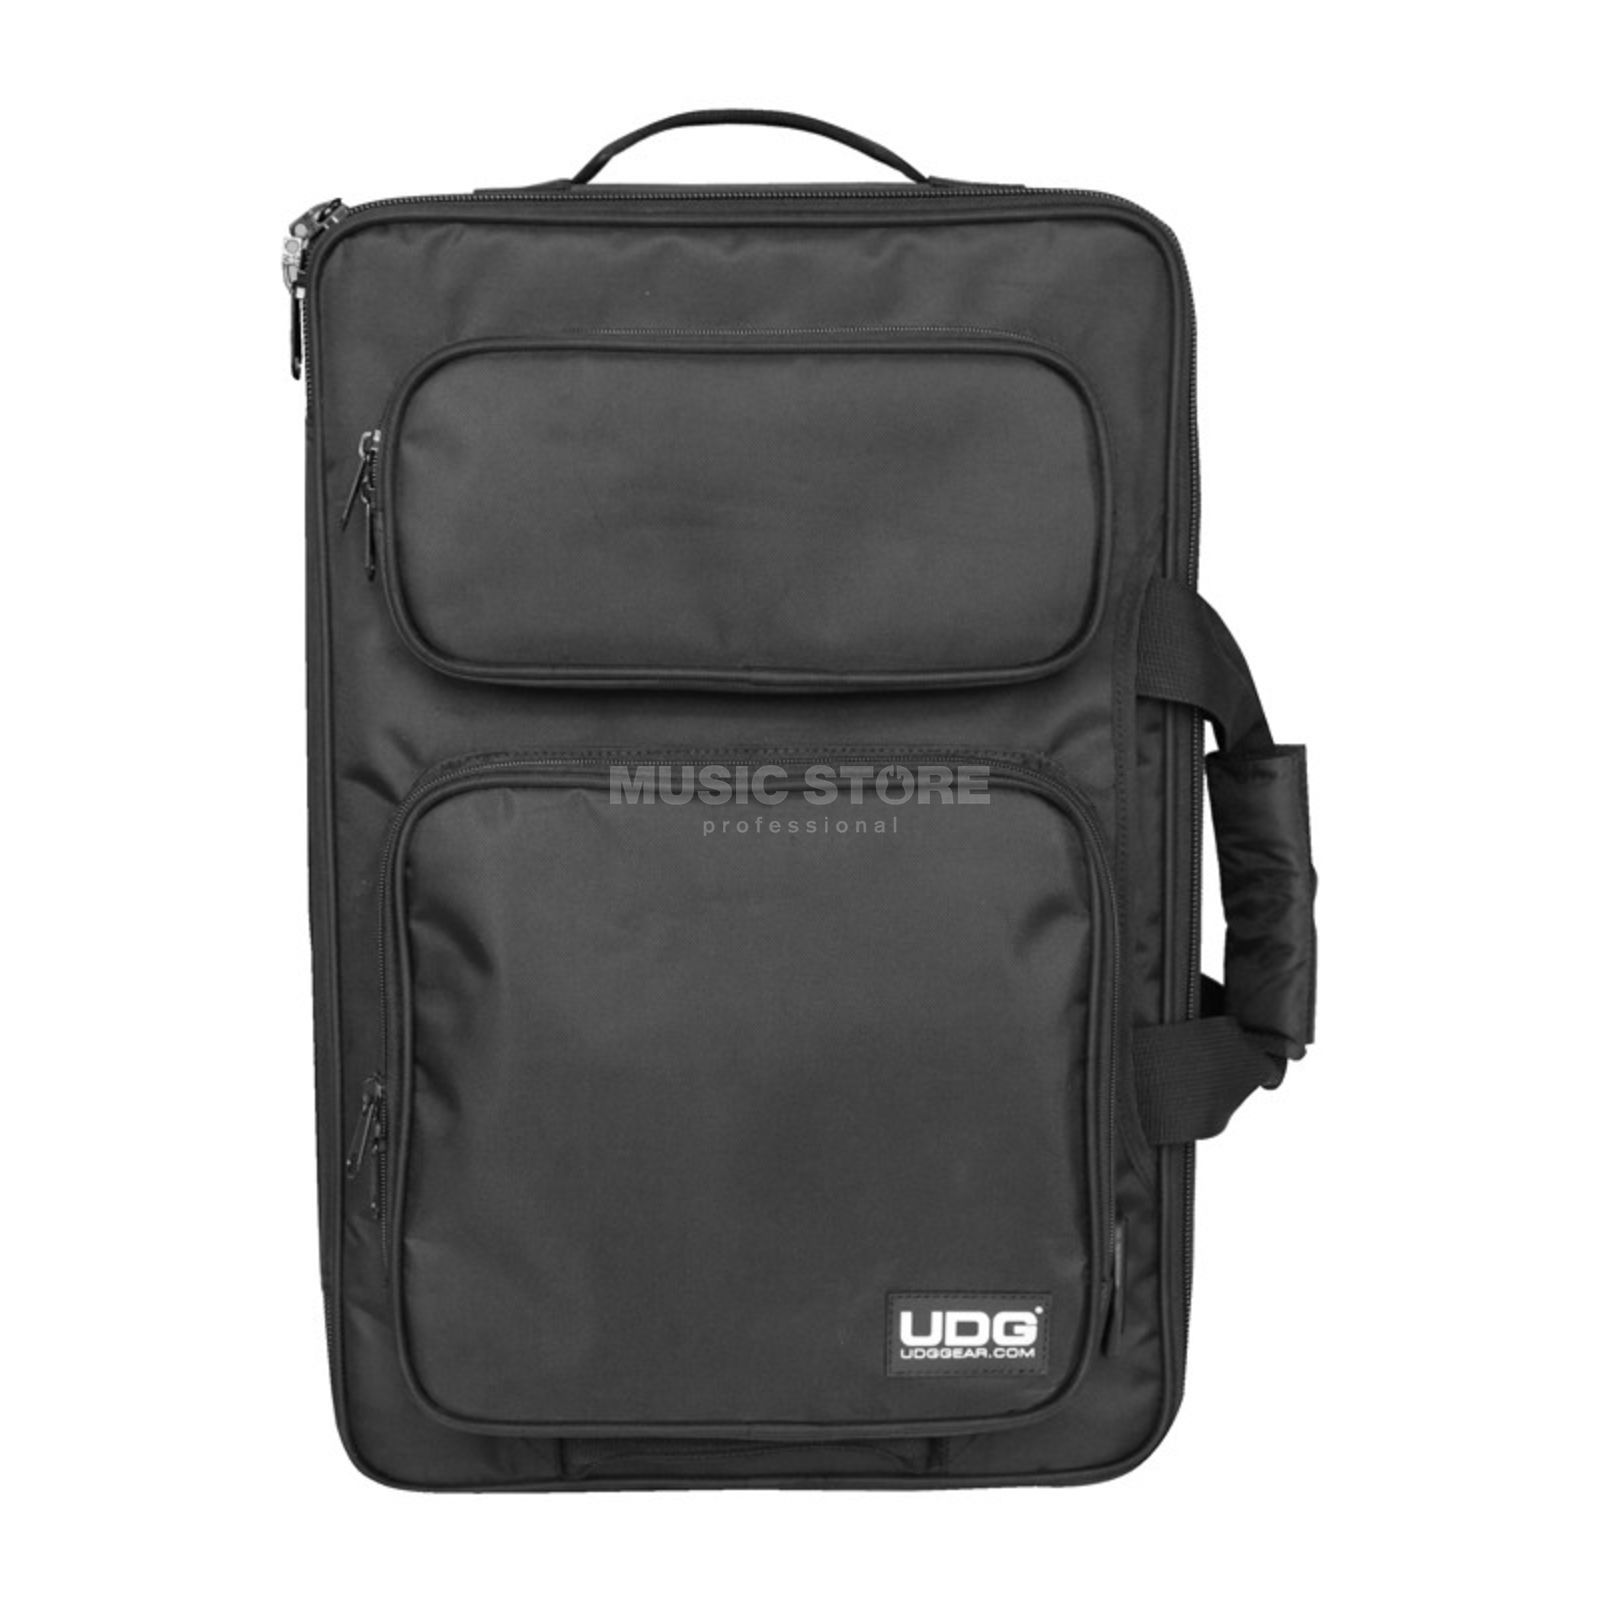 UDG NI-S4 Midi Controller Backpack Black/Orange (U9103BL/OR) Produktbillede